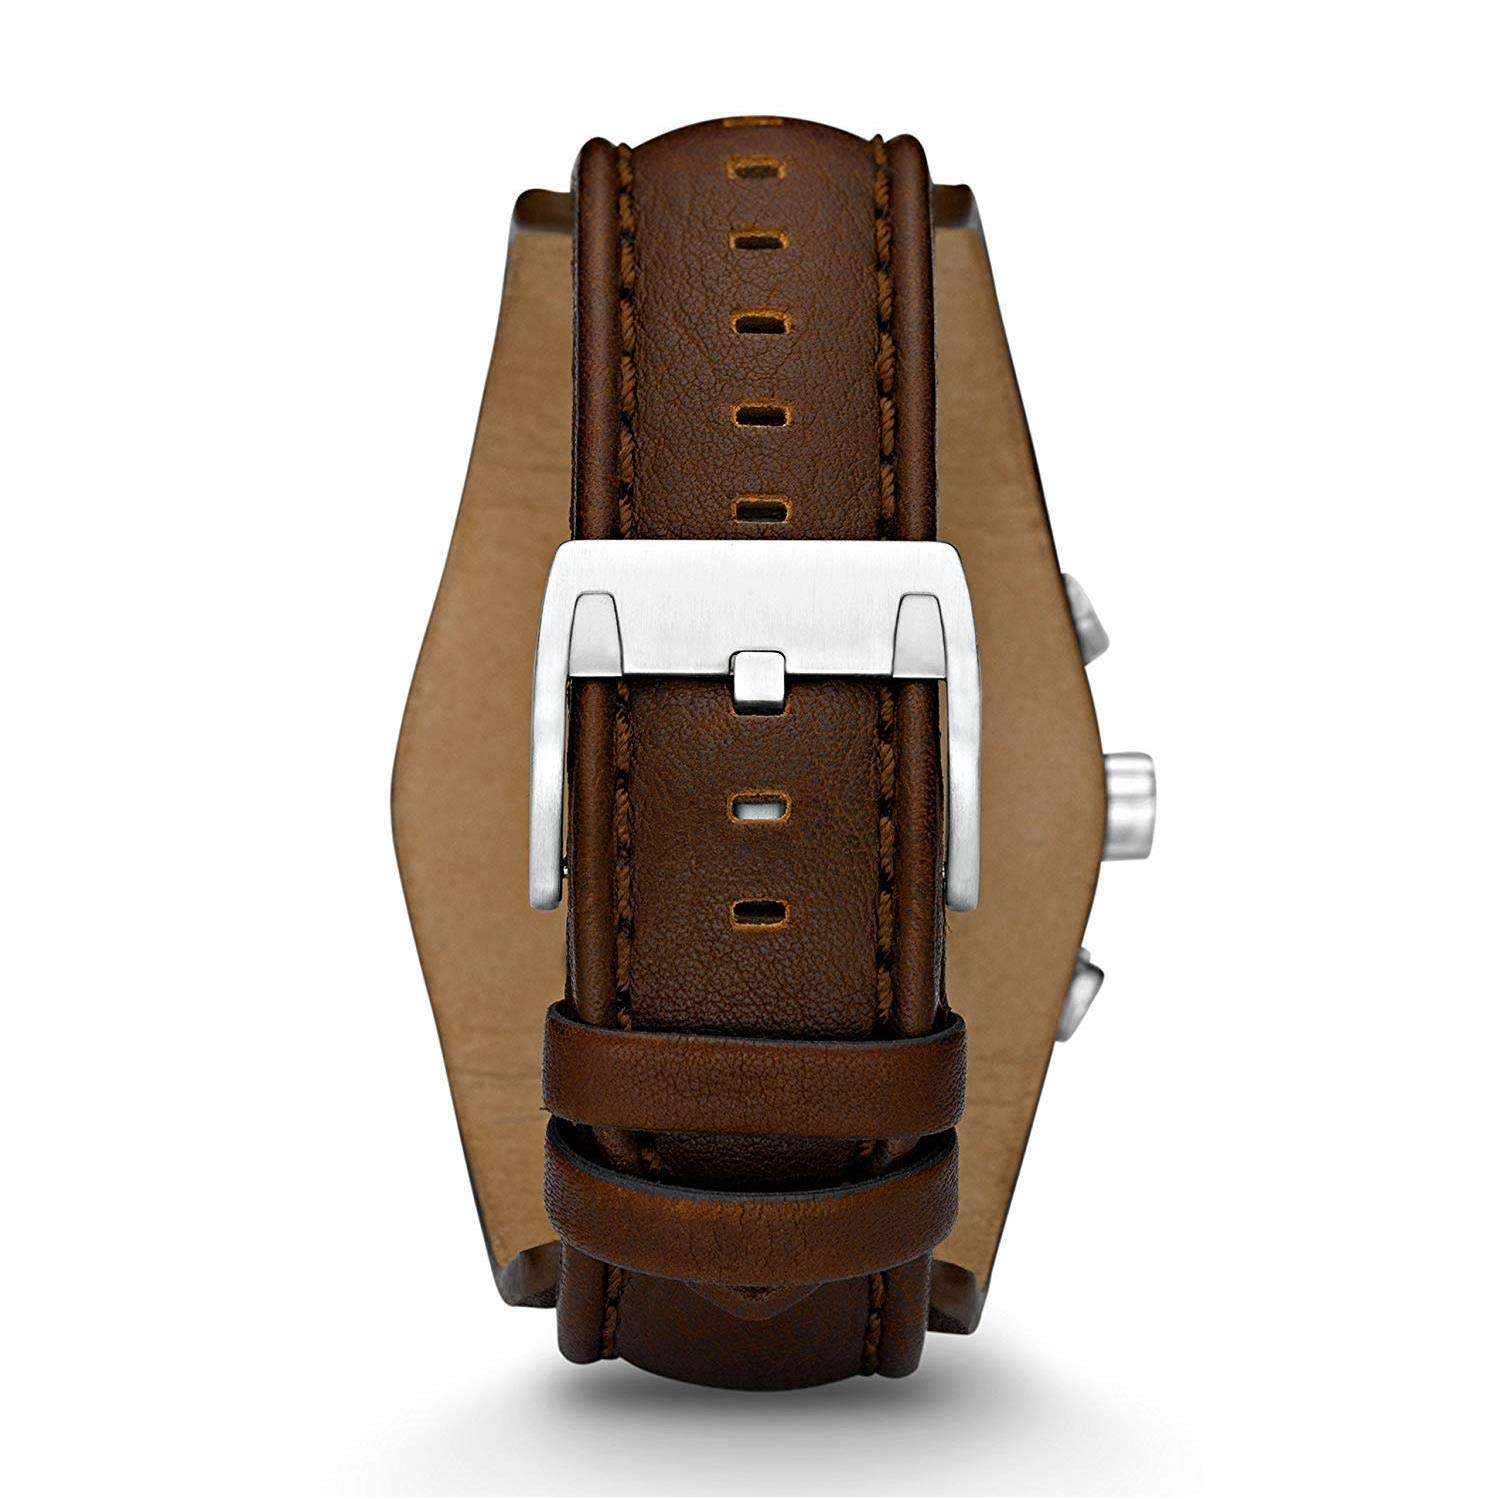 9b28d9141cc61 Fossil watch strap CH-2565 Leather Dark brown 22mm (Only watch strap -  WATCH NOT INCLUDED!): Amazon.co.uk: Watches